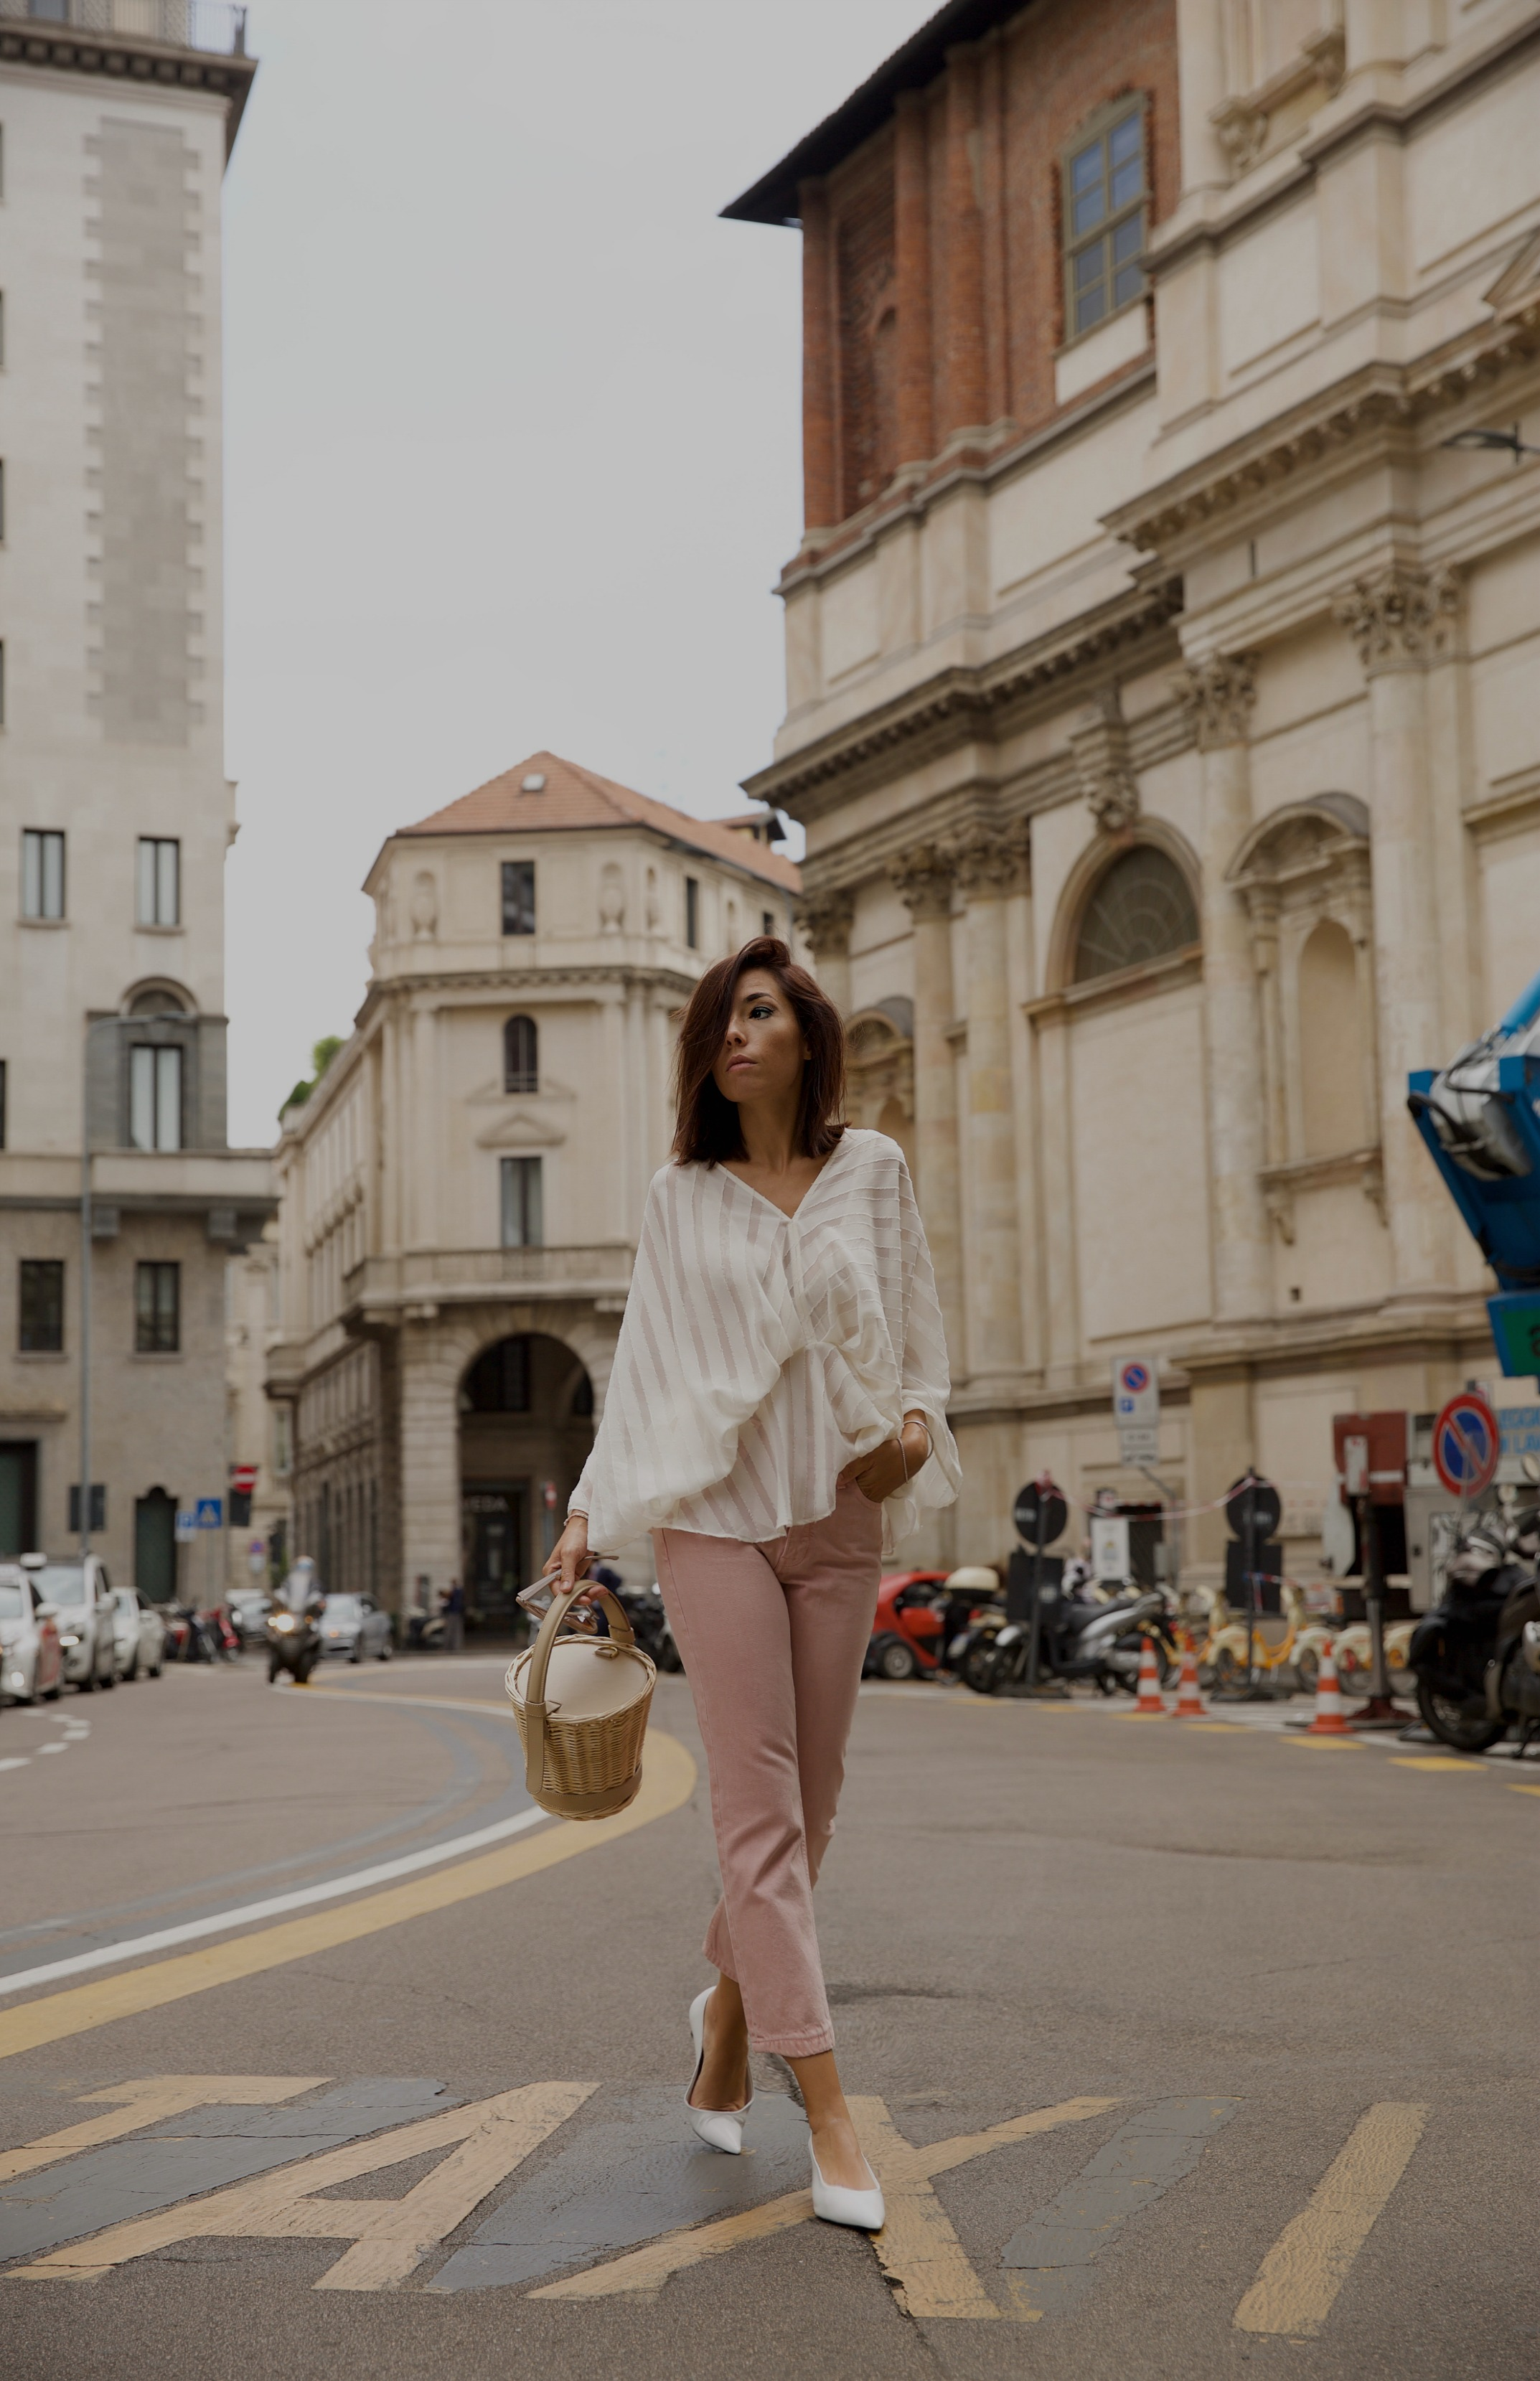 fashion blogger famose 2019, come vestirsi 2019, moda autunno 2019, come vestirsi estate 2019, elisa bellino, blogger moda 2019, fashion blogger milano 2019, fashion blog 2019, lusso in affito,